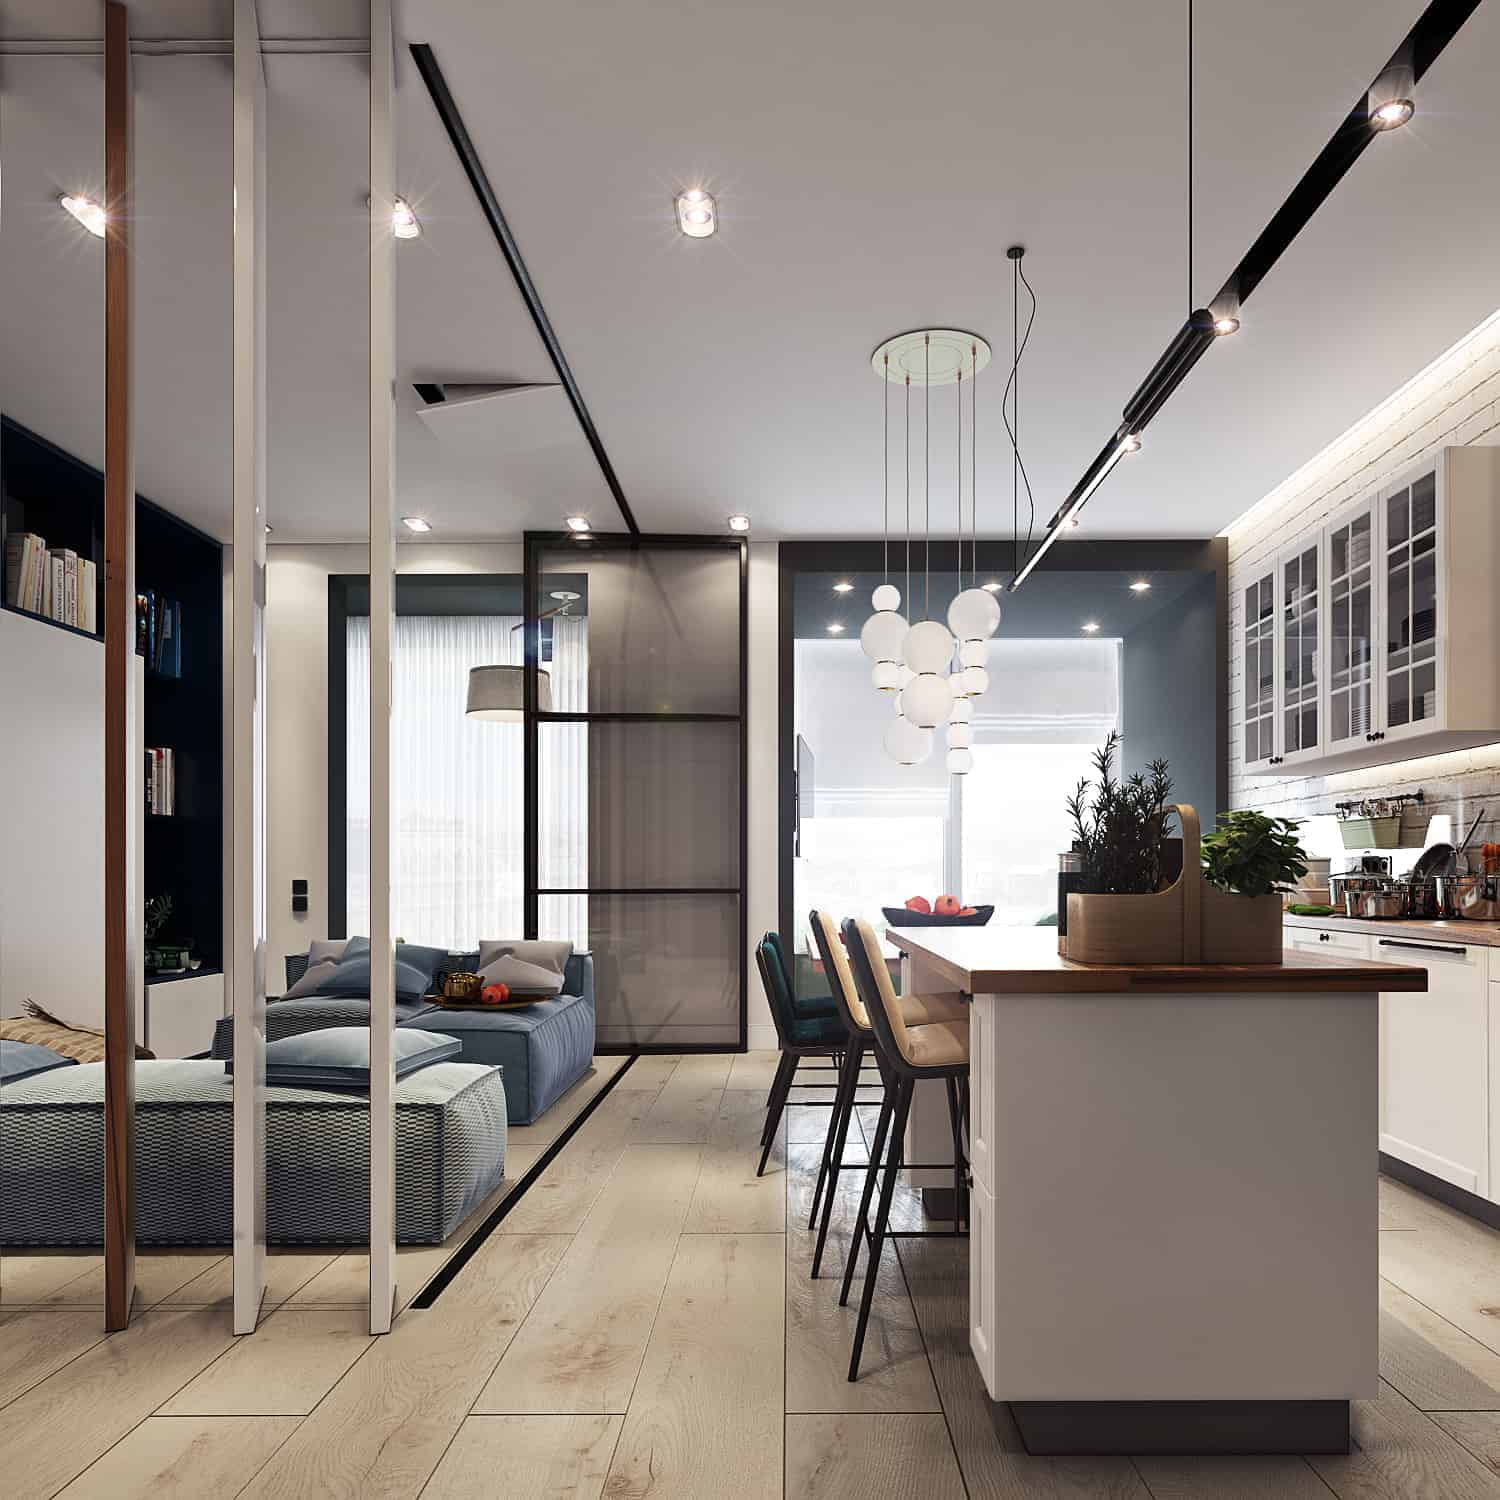 Now is the interior solution is popular in the world of a lot of small spaces that want to make the most of so space transformers theme is relevant